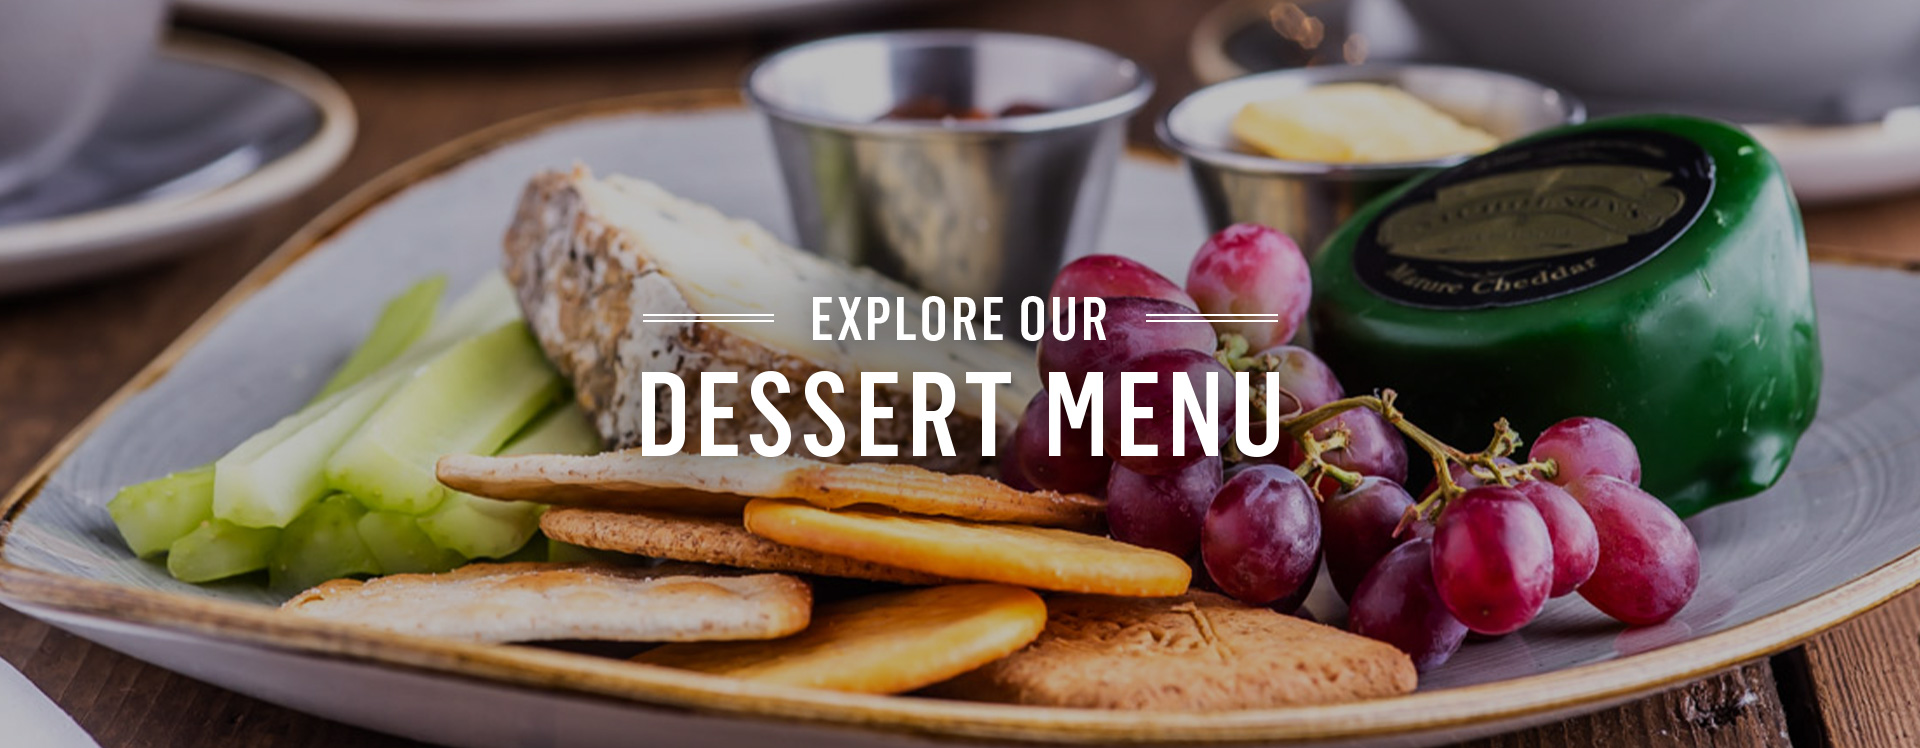 Dessert menu at [outlet] - Book a table